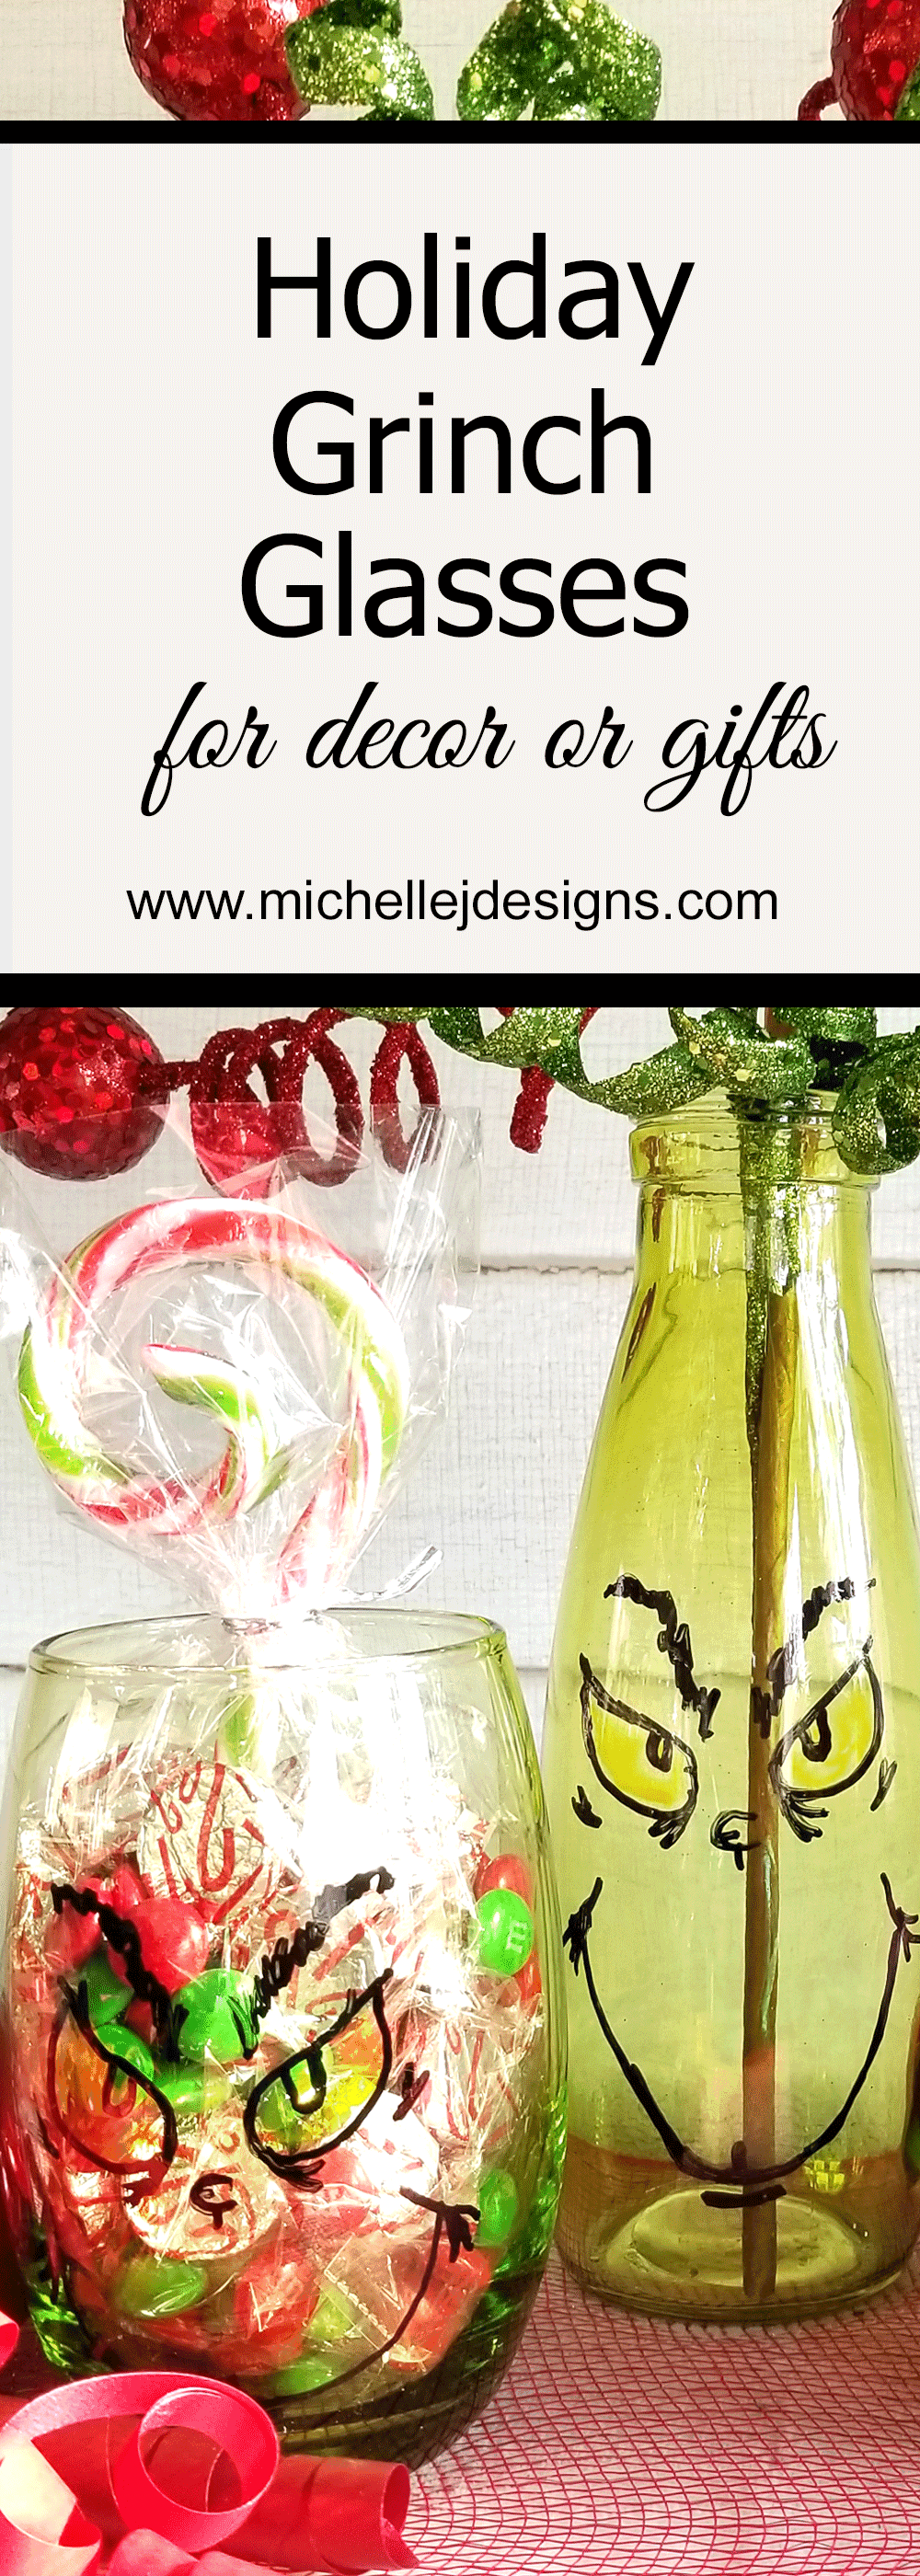 Create some fun Grinch glasses then use them for easy Grinch Gifts for neighbors, friends, or family!